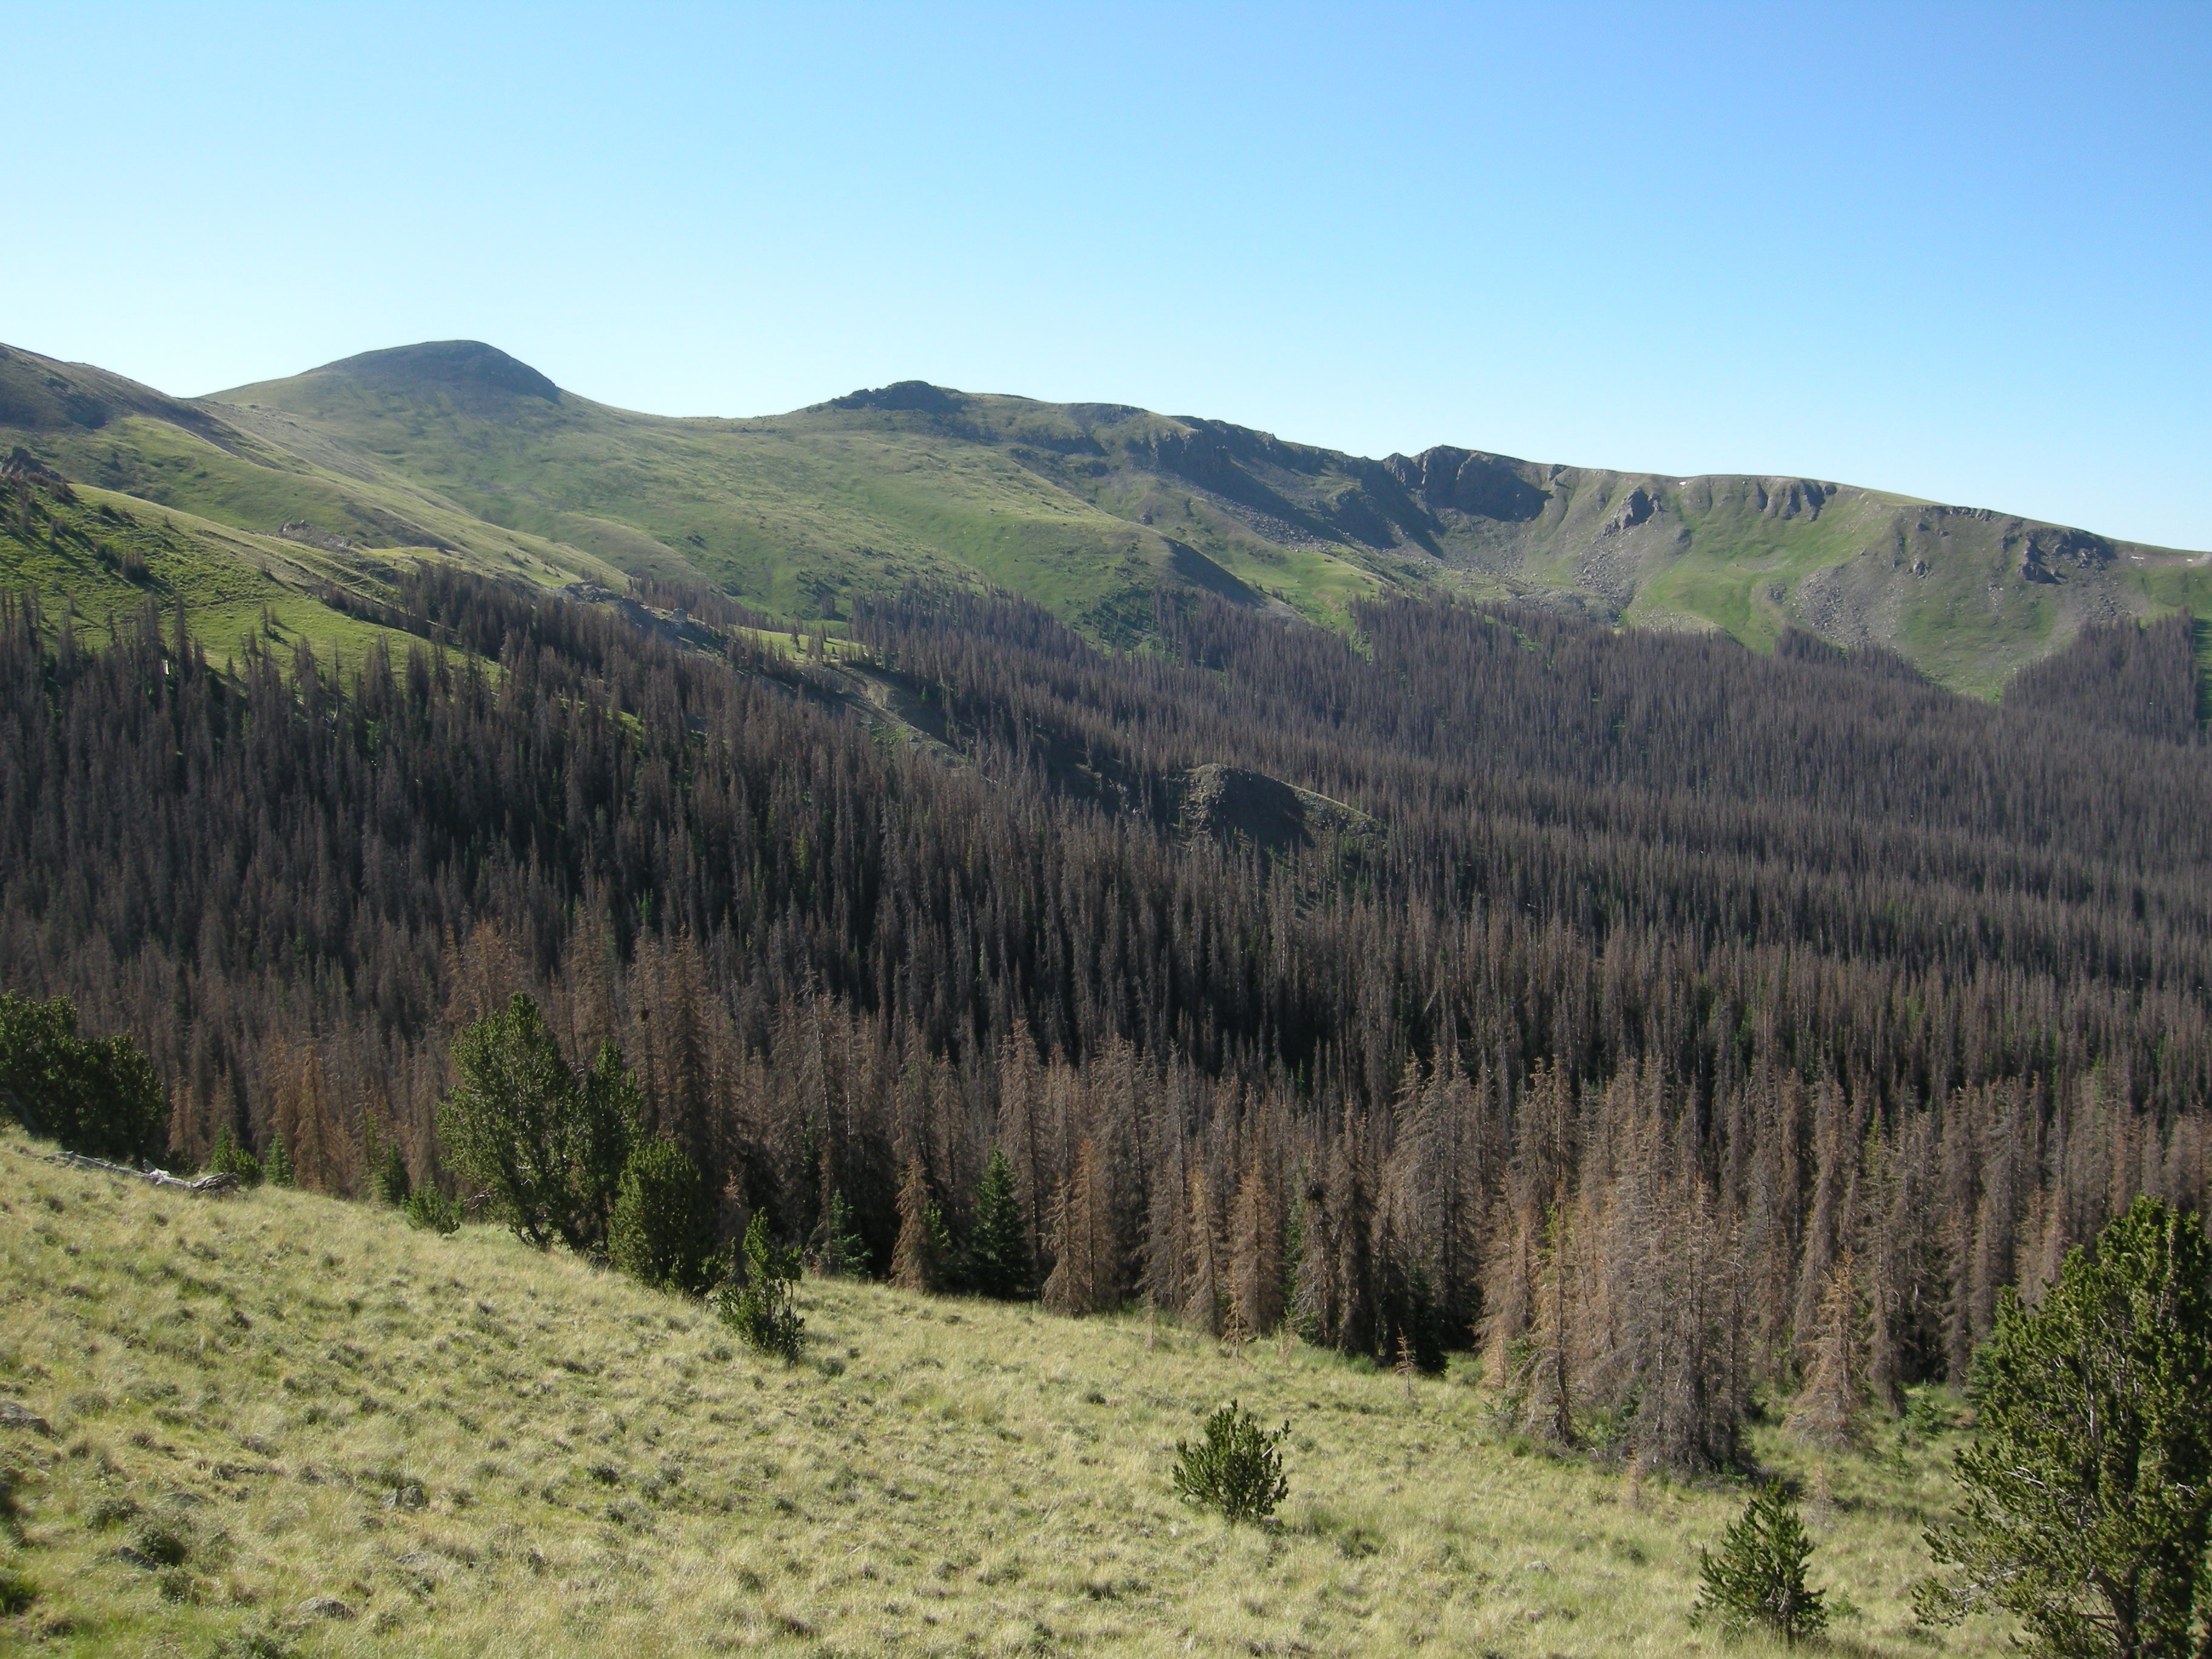 Spruce-fir affected forests from spruce bark beetle in Canada Lynx habitat, Rio Grande National Forest, CO